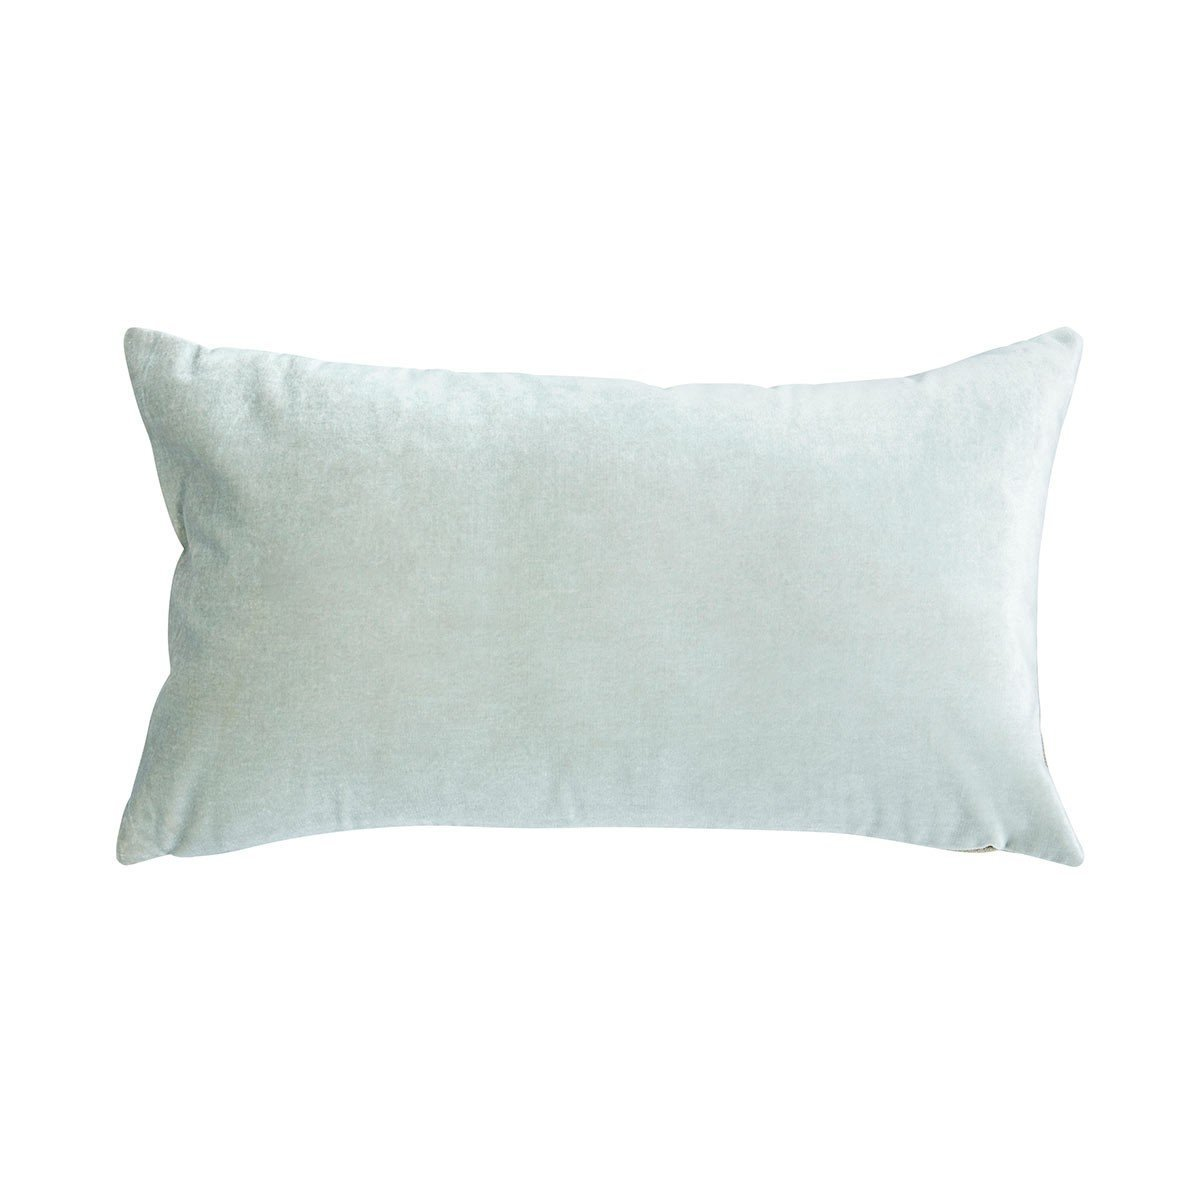 Berlingot Lumbar Decorative Throw Pillows by Iosis Fig Linens Ice Blue